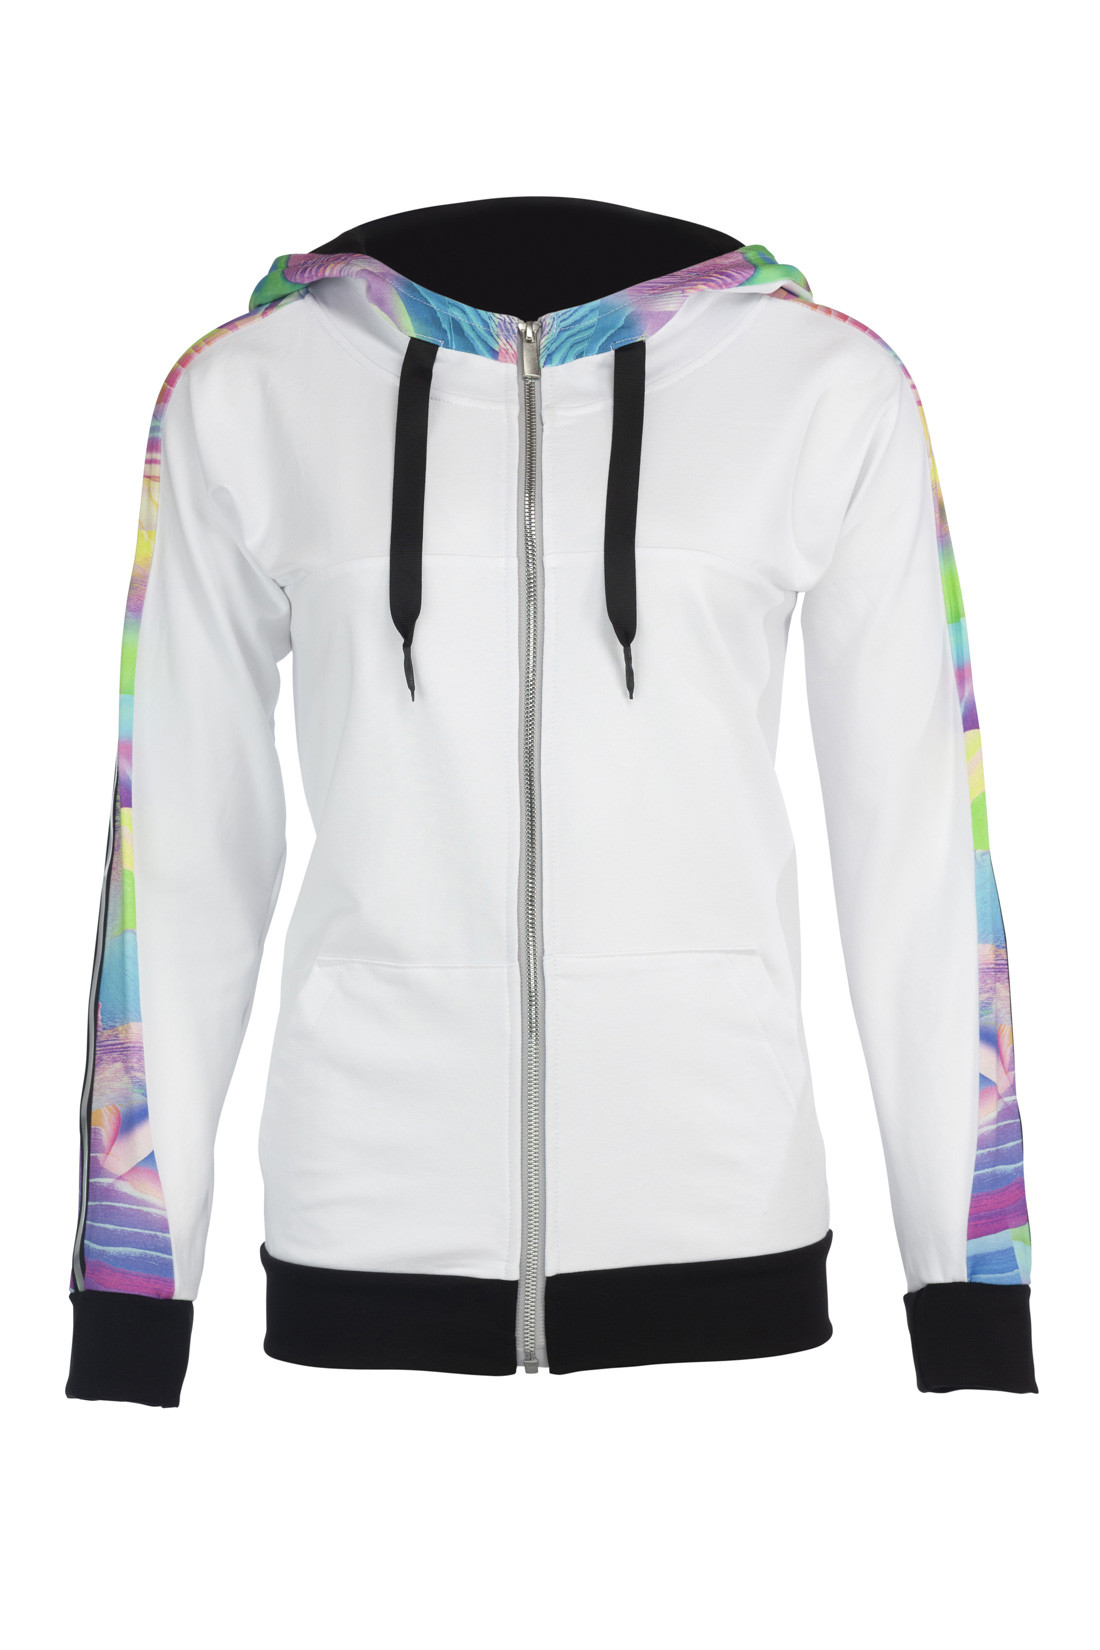 "Hoody Jacket ""tropical sport"" Lady"